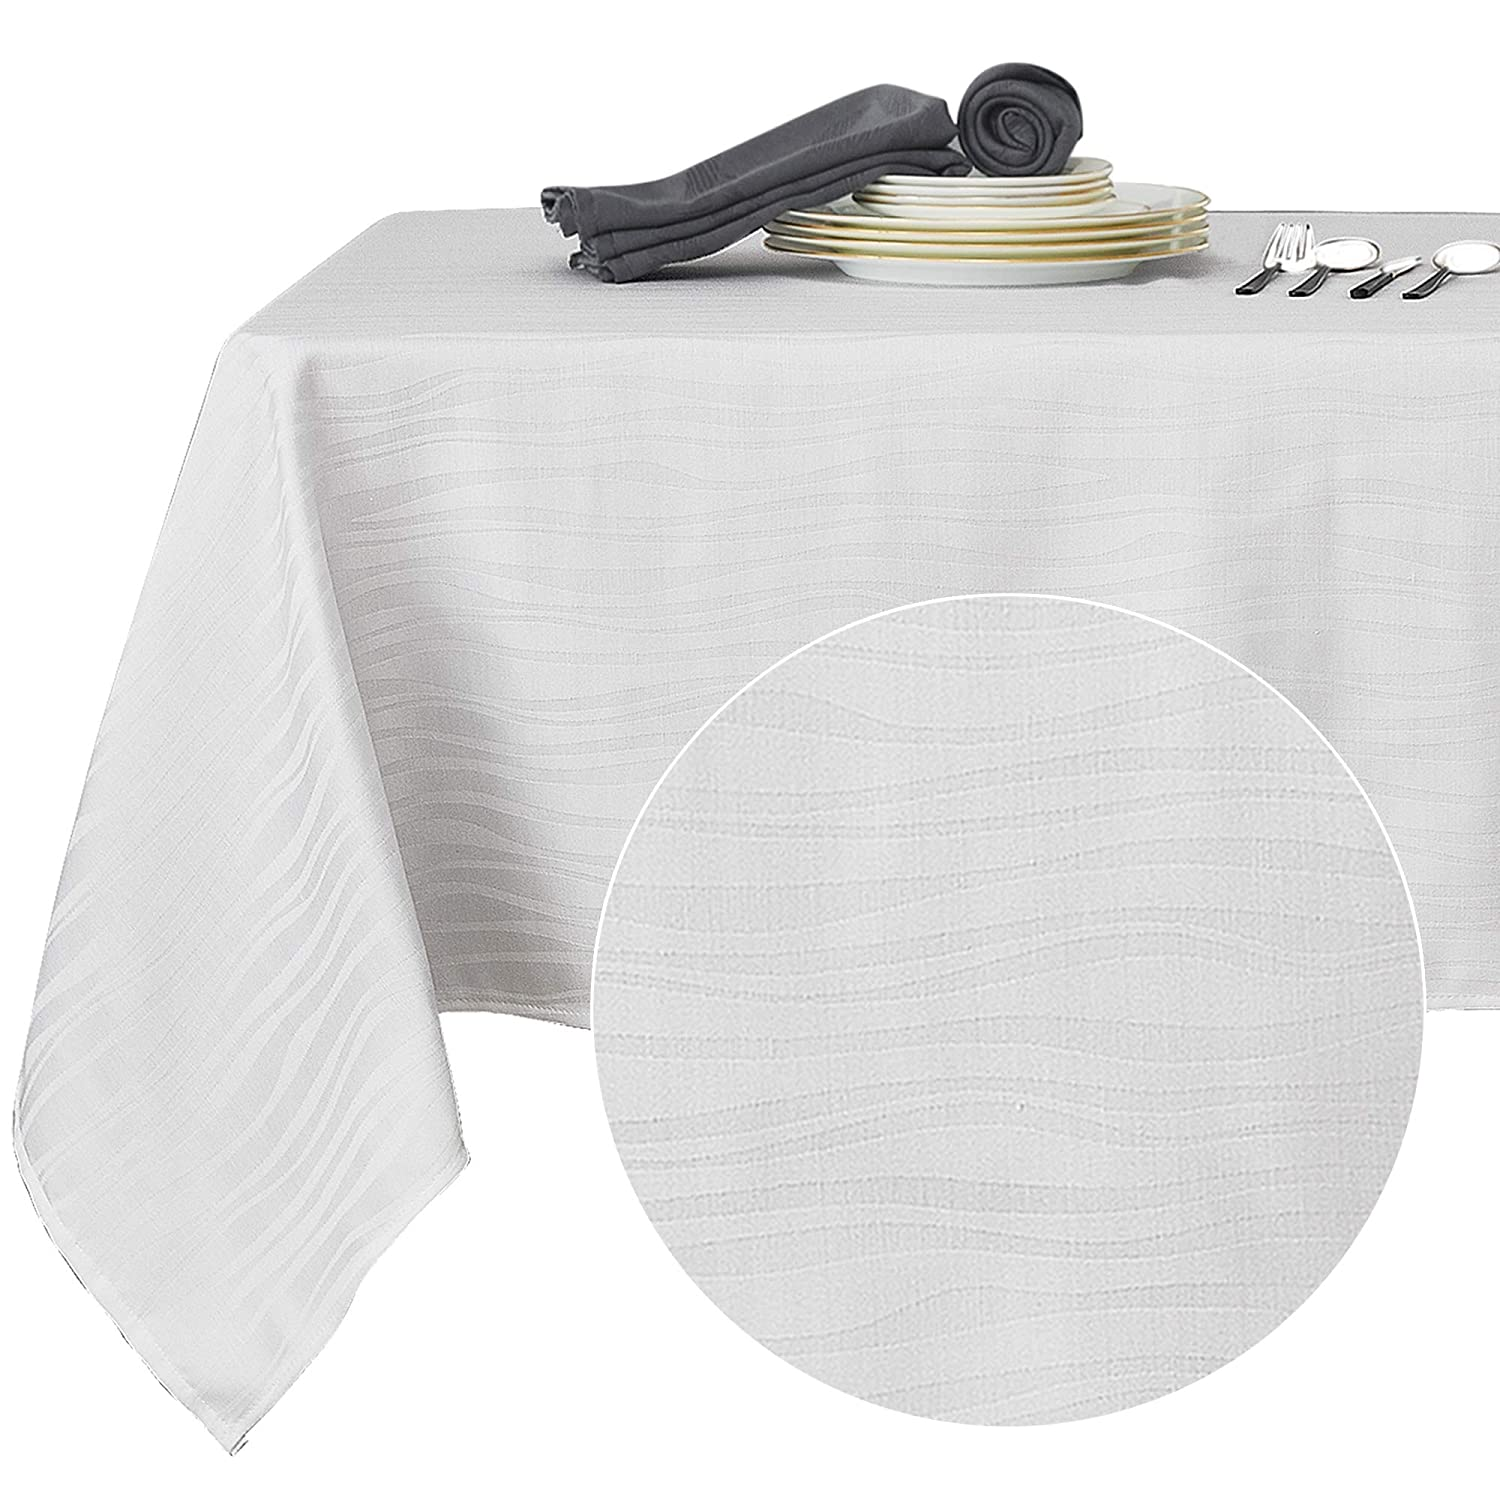 Deconovo Decorative Jacquard Rectangle Tablecloth Vibrant Waves Wrinkle Resistant and Waterproof Tablecloths for Dining Room 60 x 84 inch White